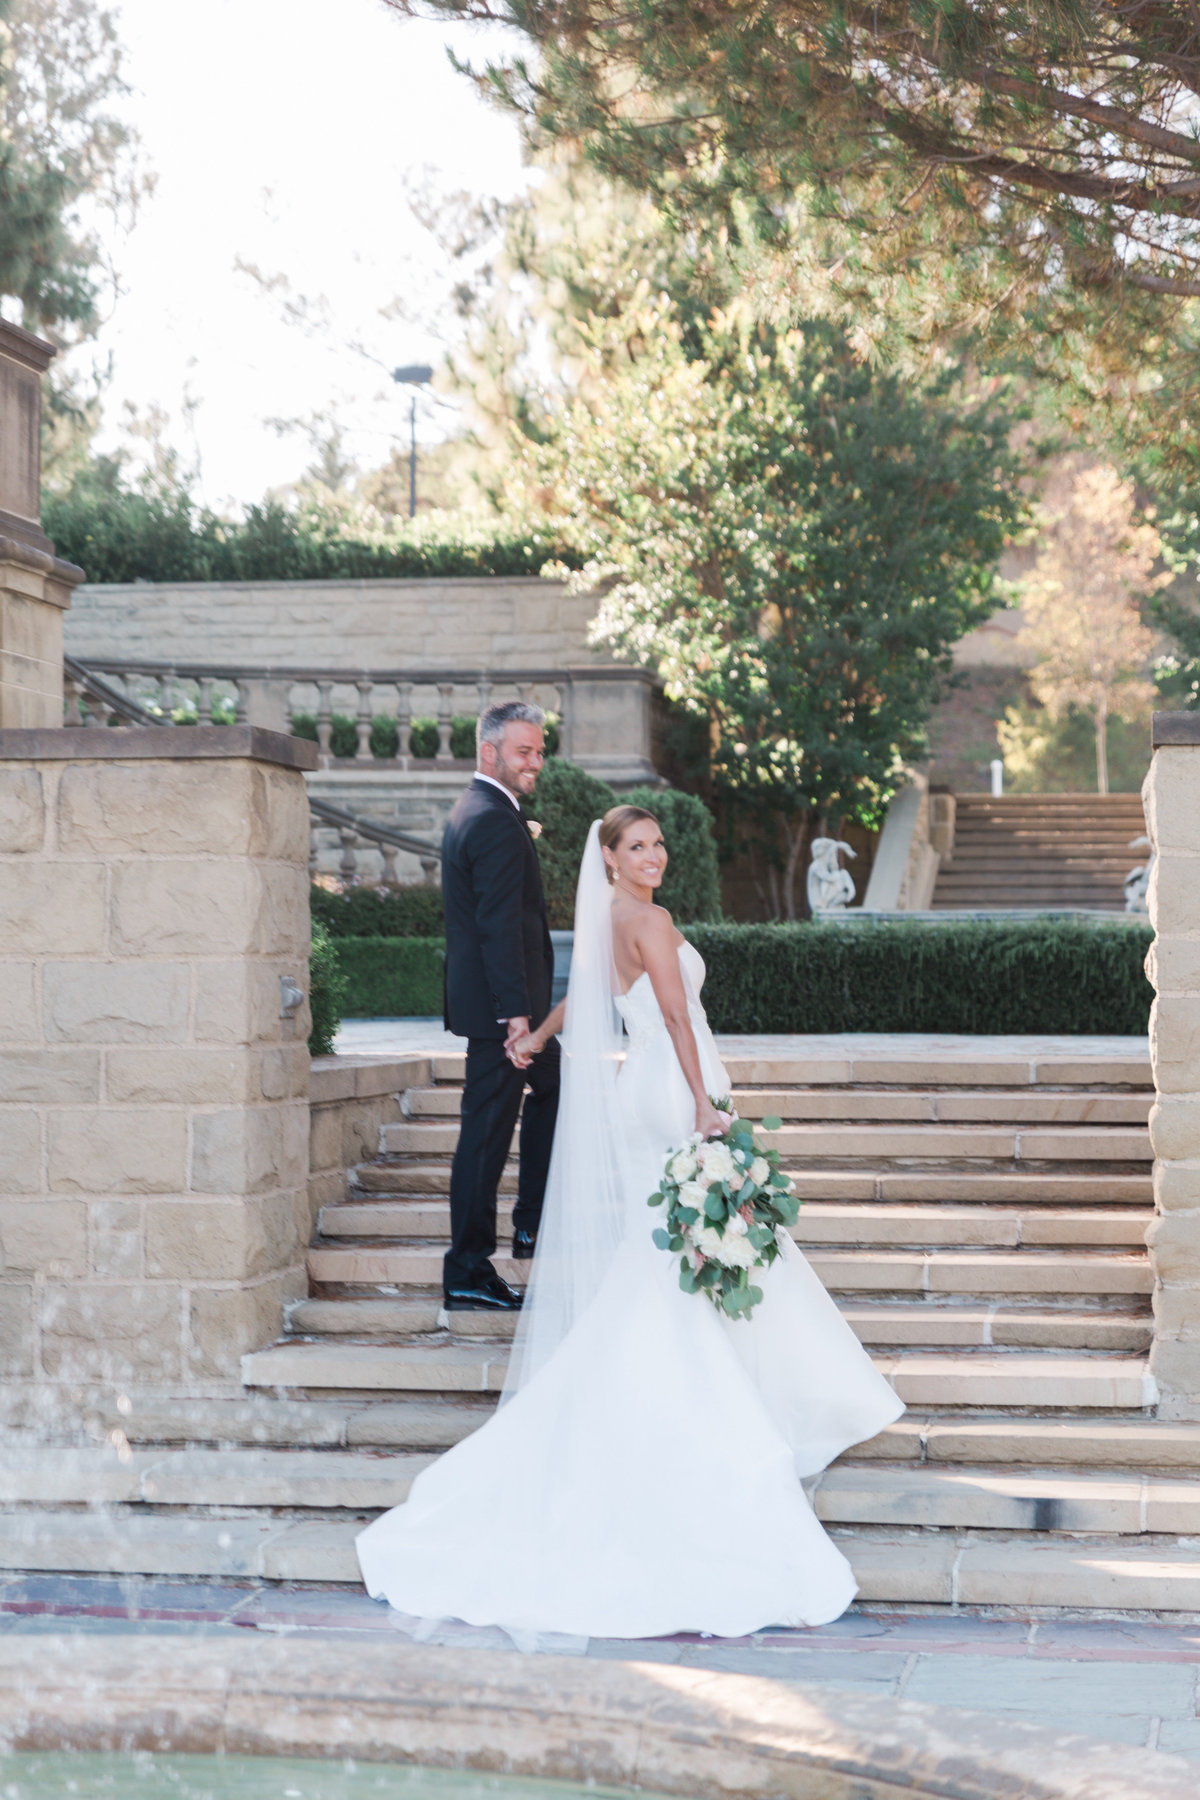 Intimate_Greystone_Mansion_Intimate_Black_Tie_Wedding_Valorie_Darling_Photography - 44 of 70